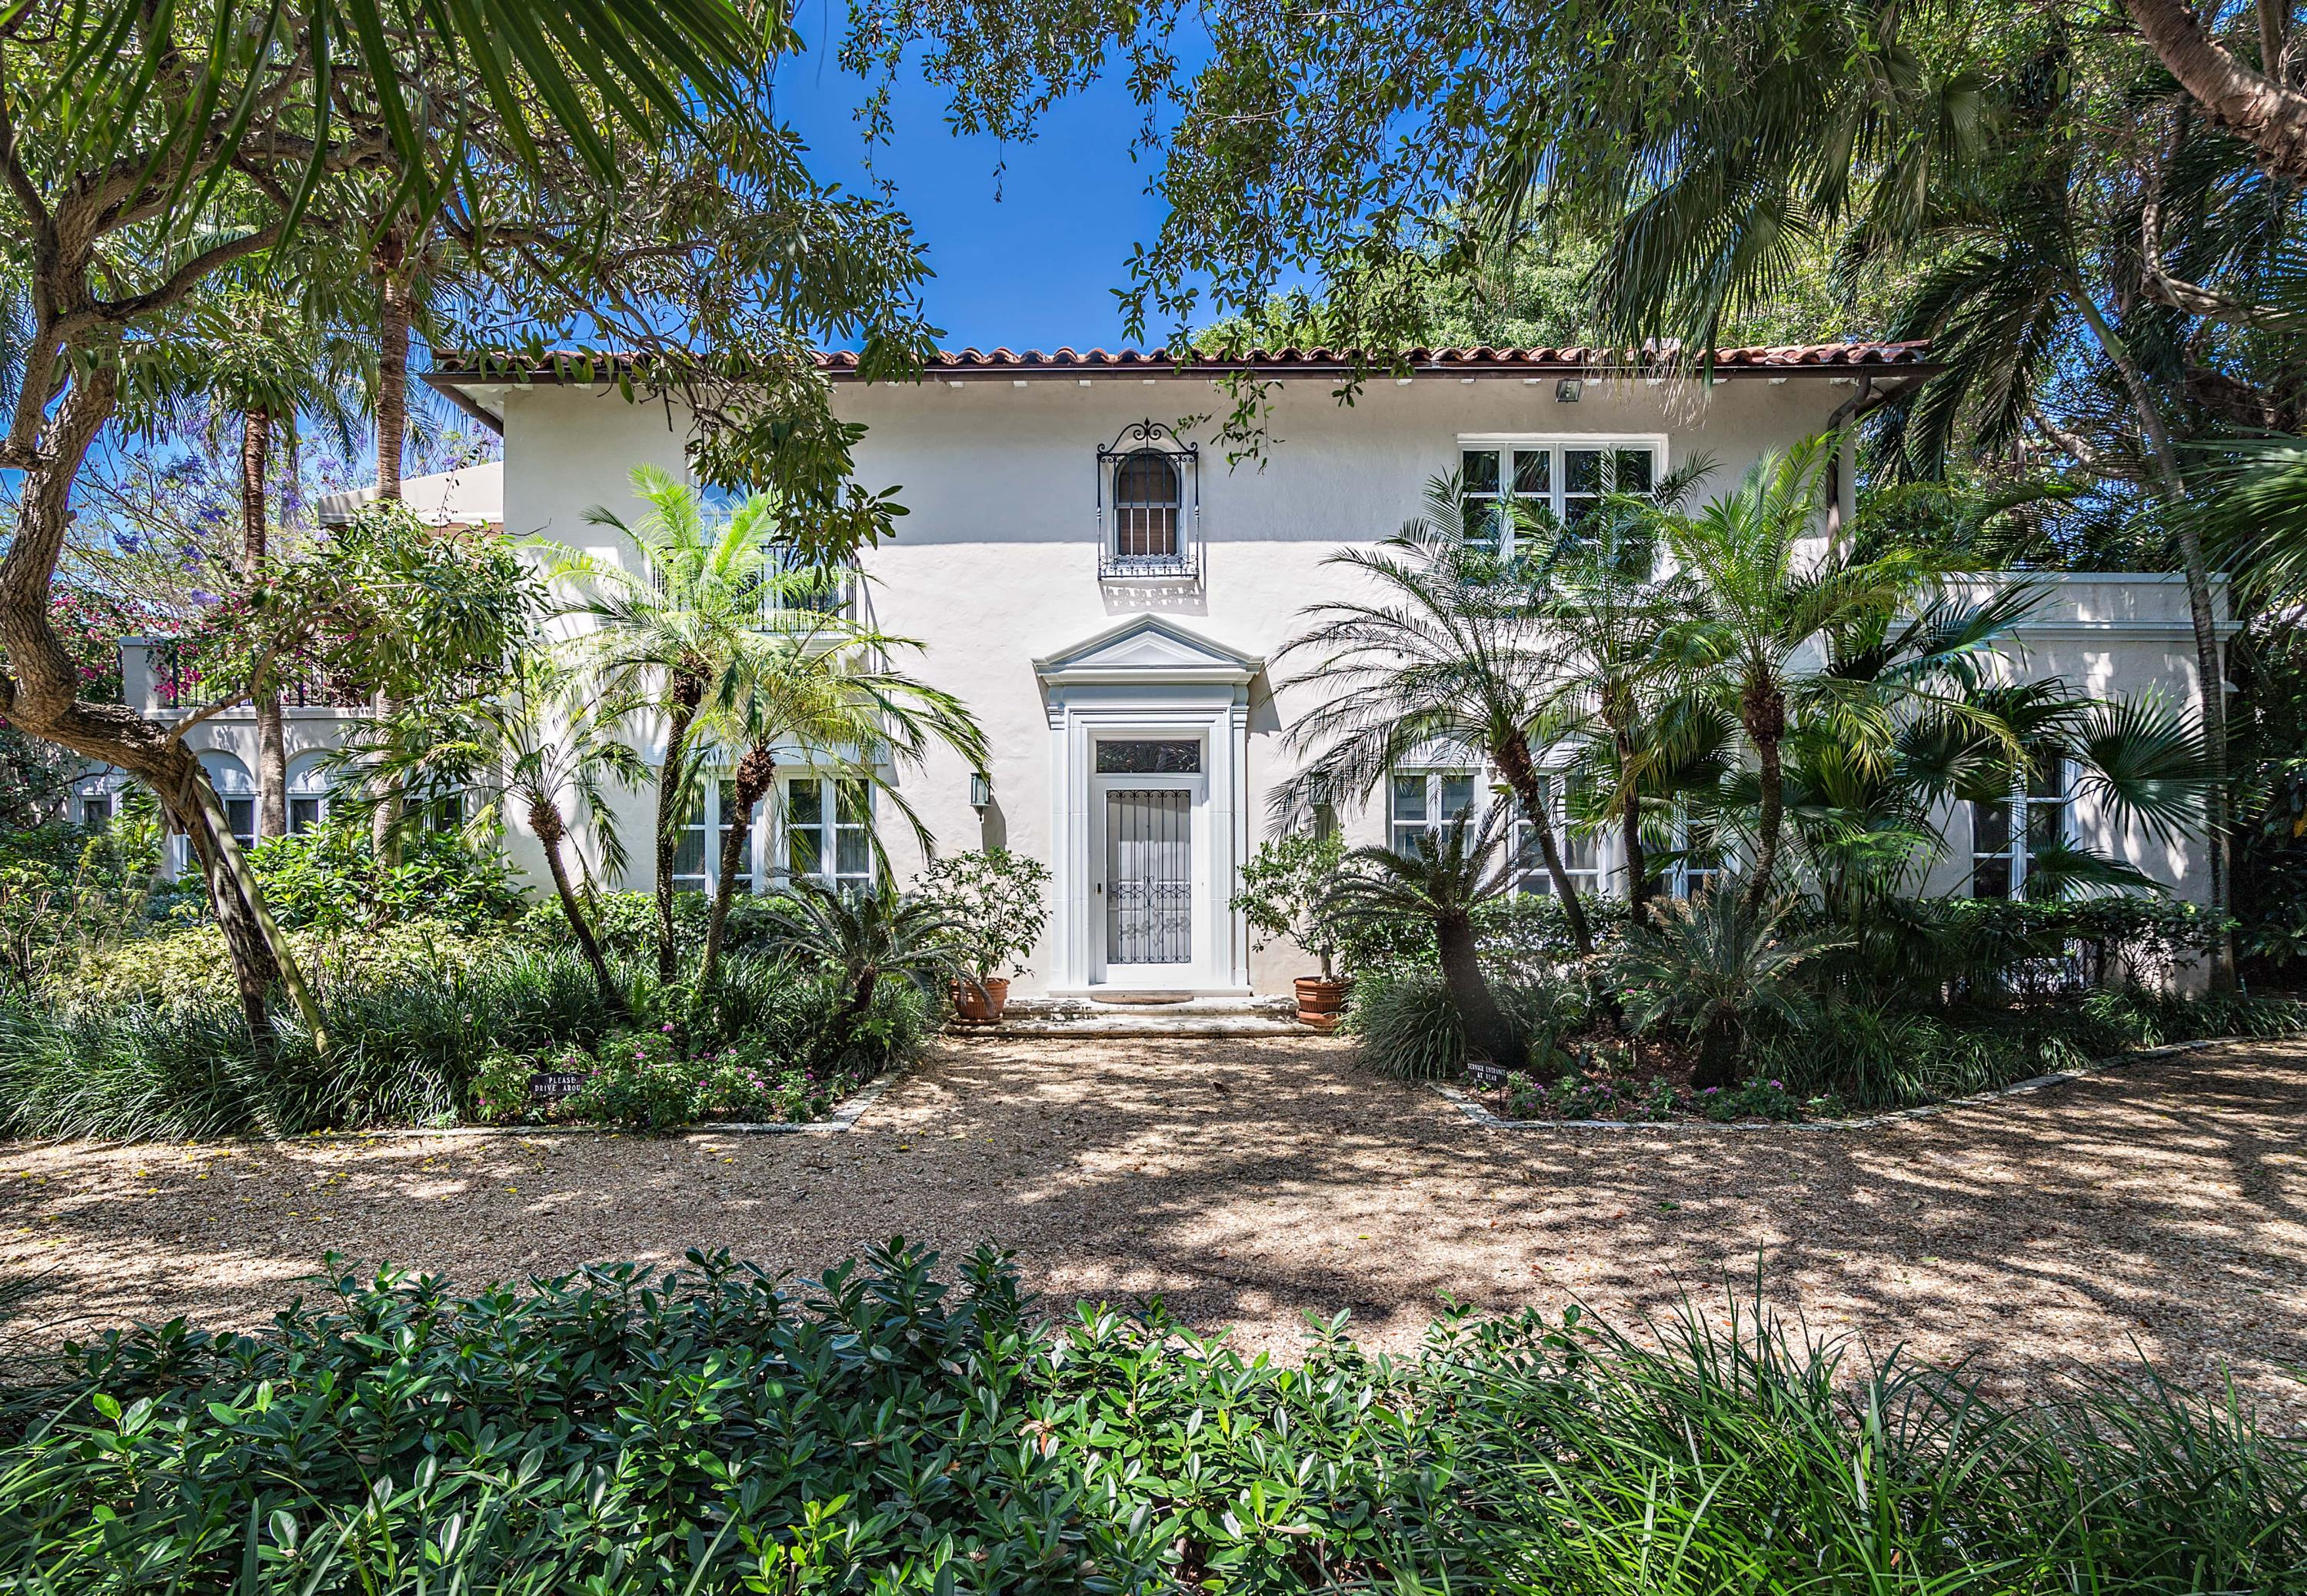 New Home for sale at 315 Clarke Avenue in Palm Beach